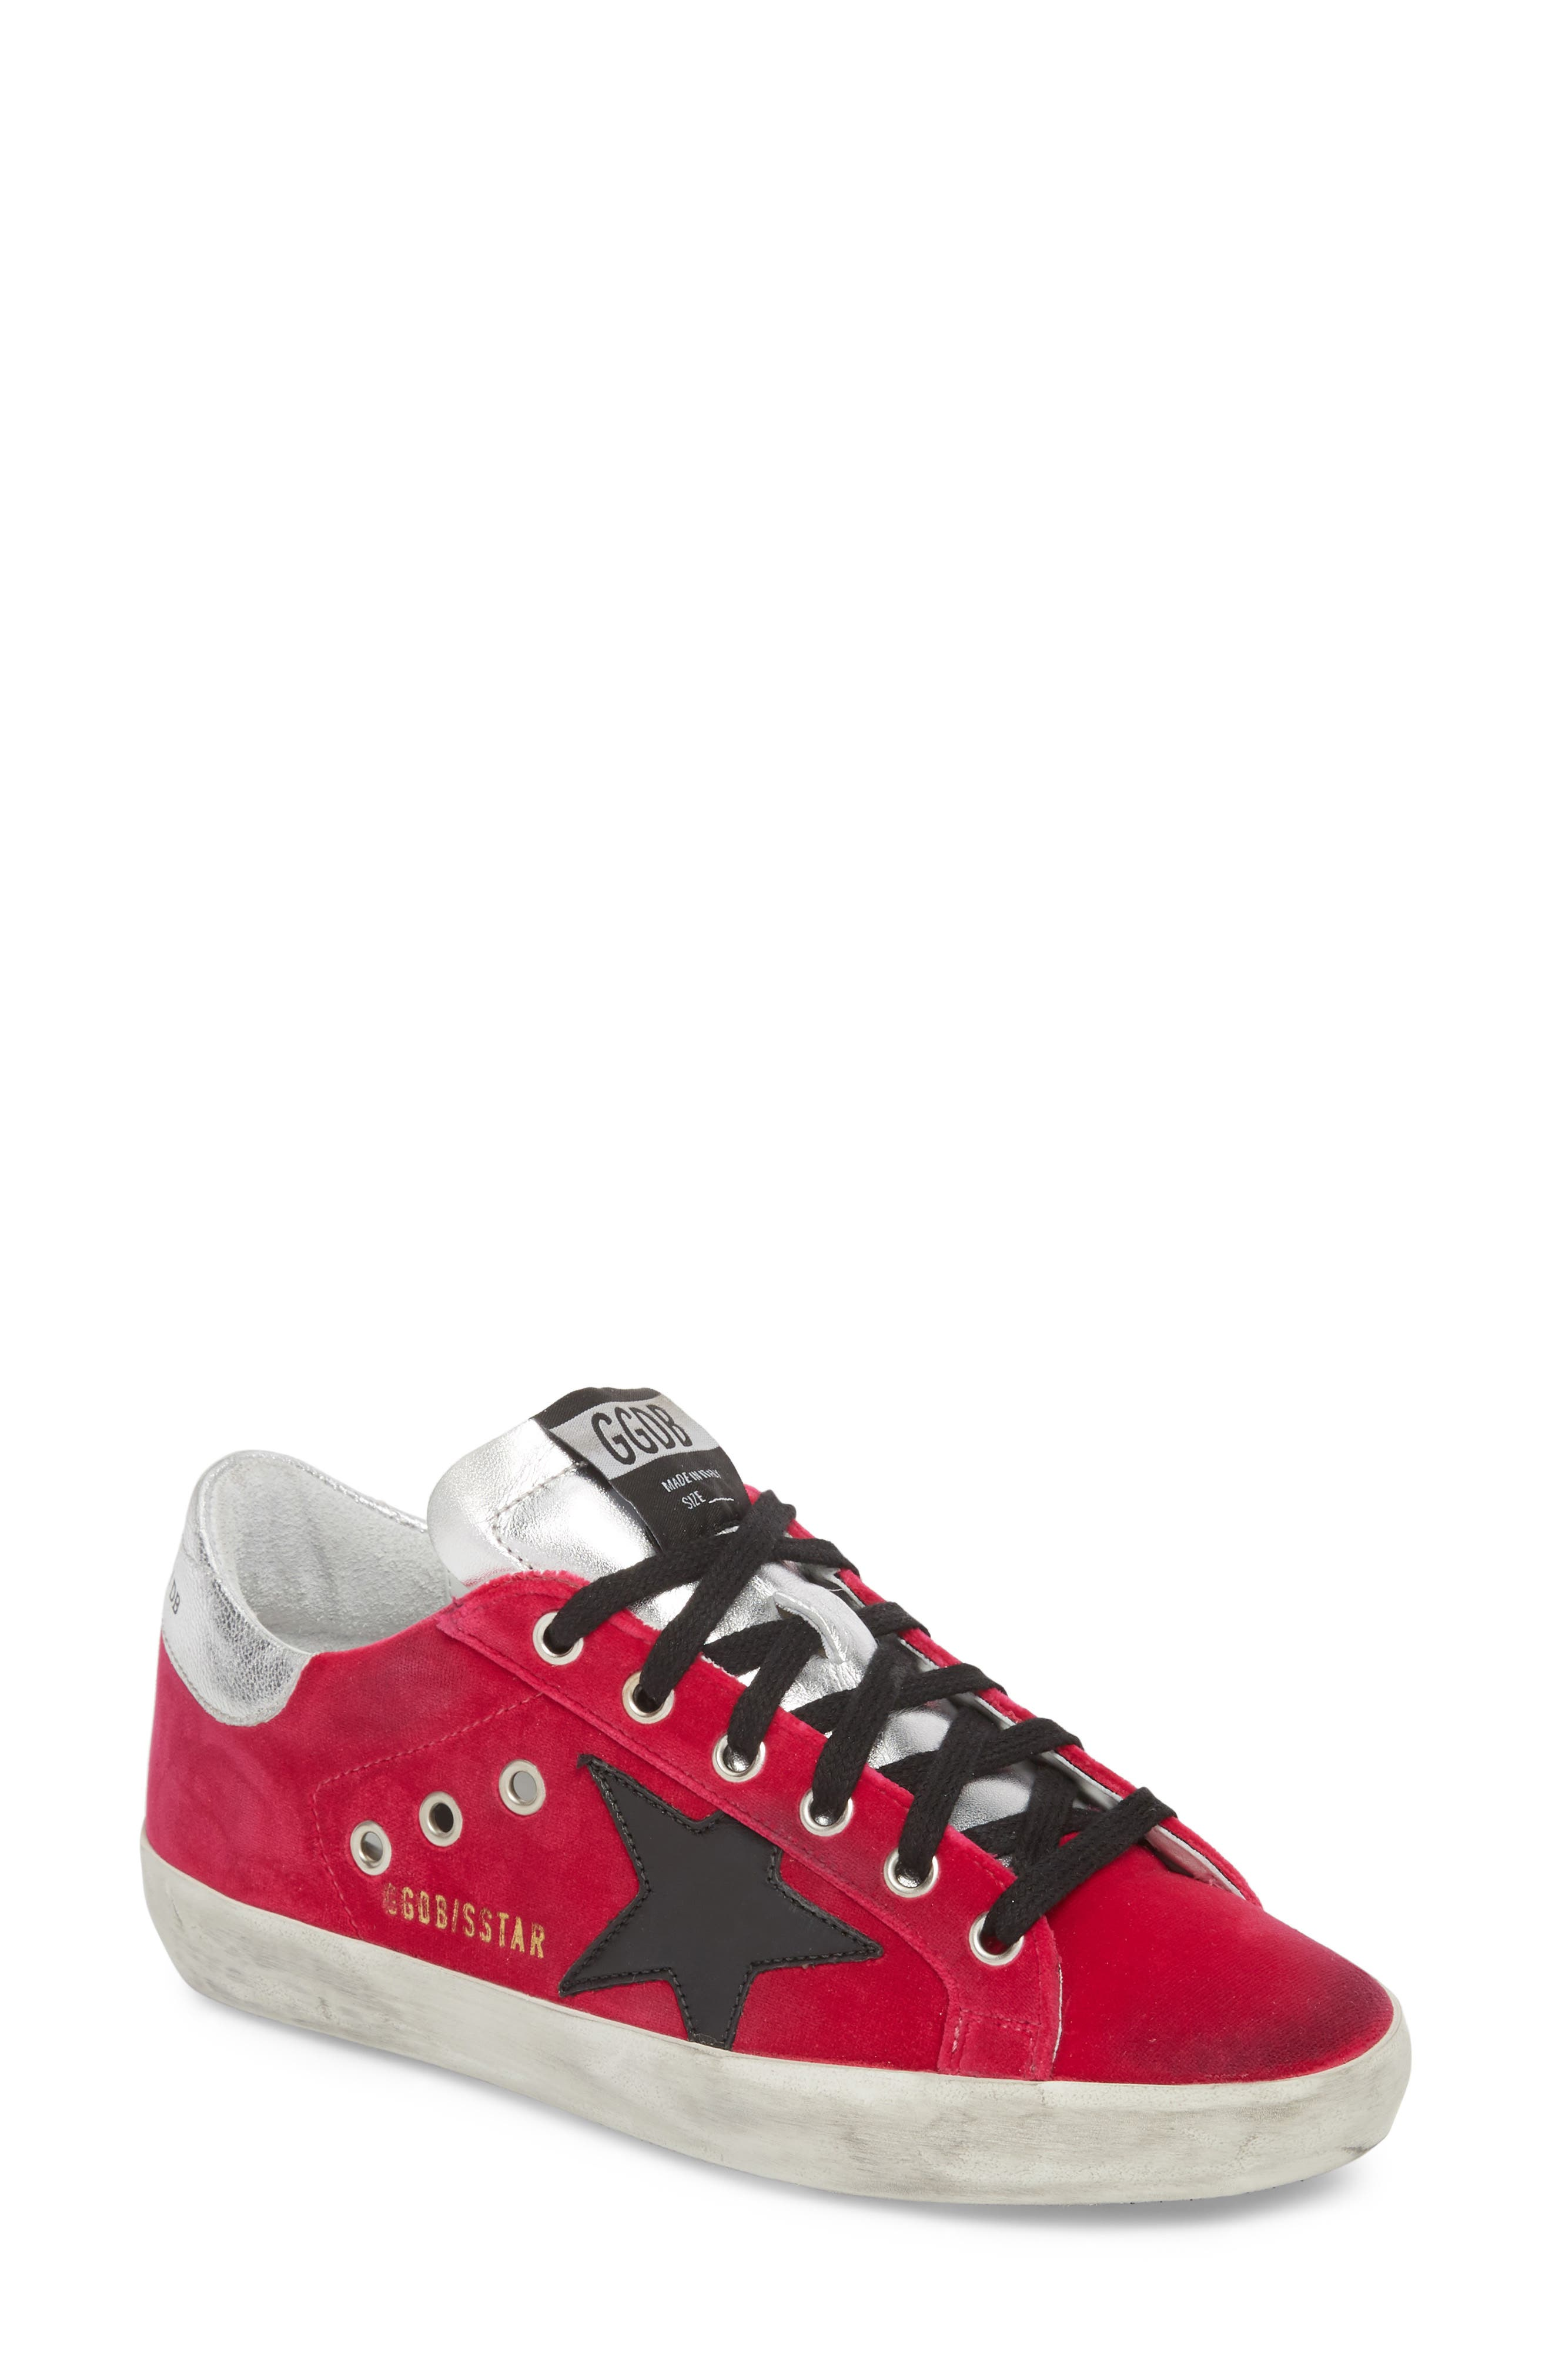 Superstar Low Top Sneaker,                             Main thumbnail 1, color,                             FUCHSIA/ BLACK